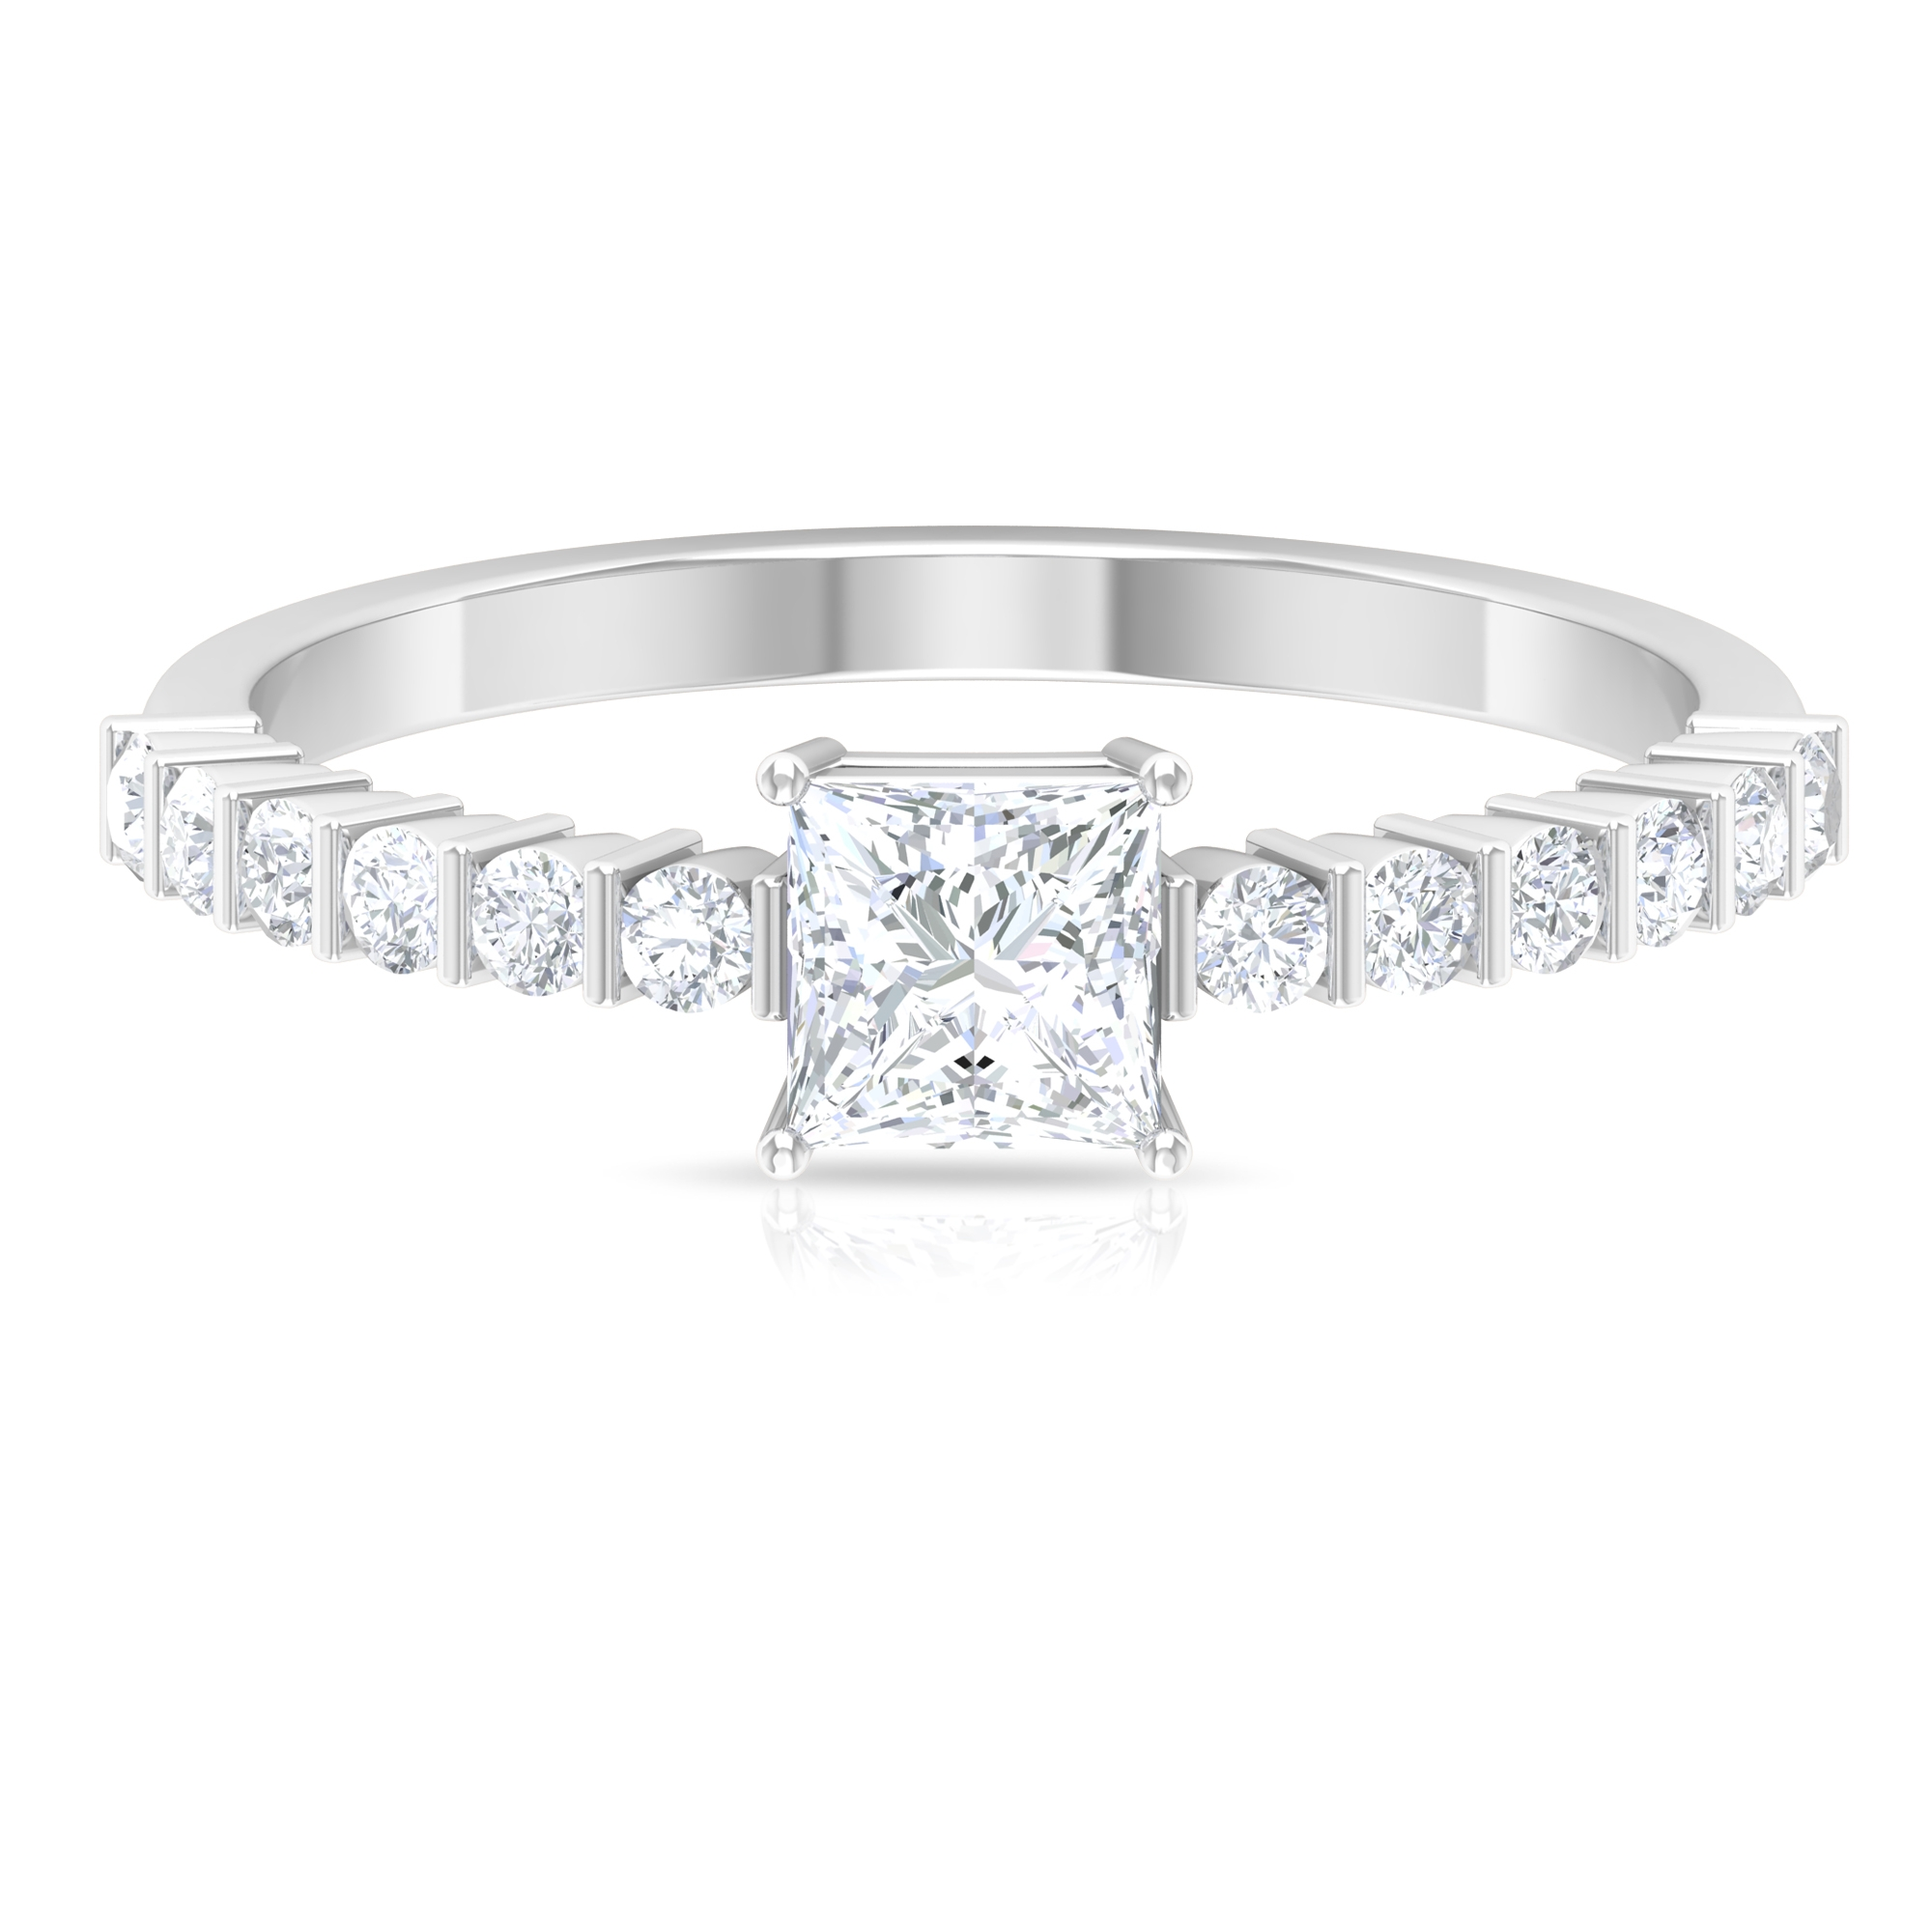 4.5 MM Princess Cut Diamond Solitaire 4-Prong Set Ring with Bar Set Side Stones